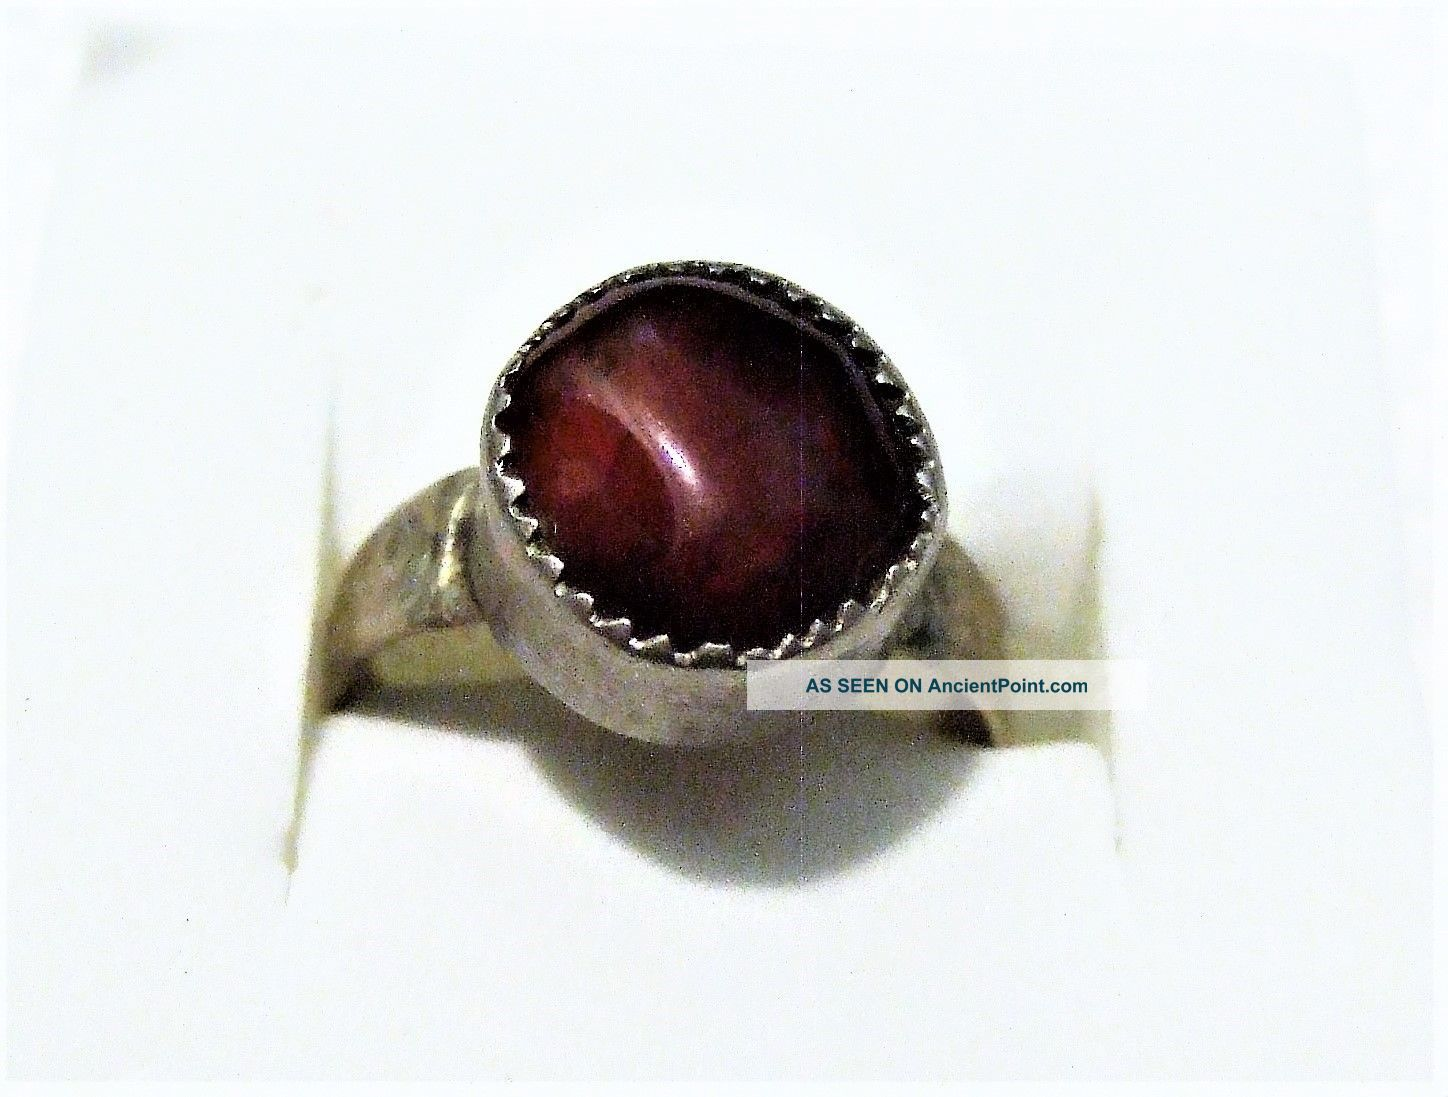 Vintage Islamic Middle Eastern Tribal Ethnic Red Agate Ring خاتم اسلامي Islamic photo